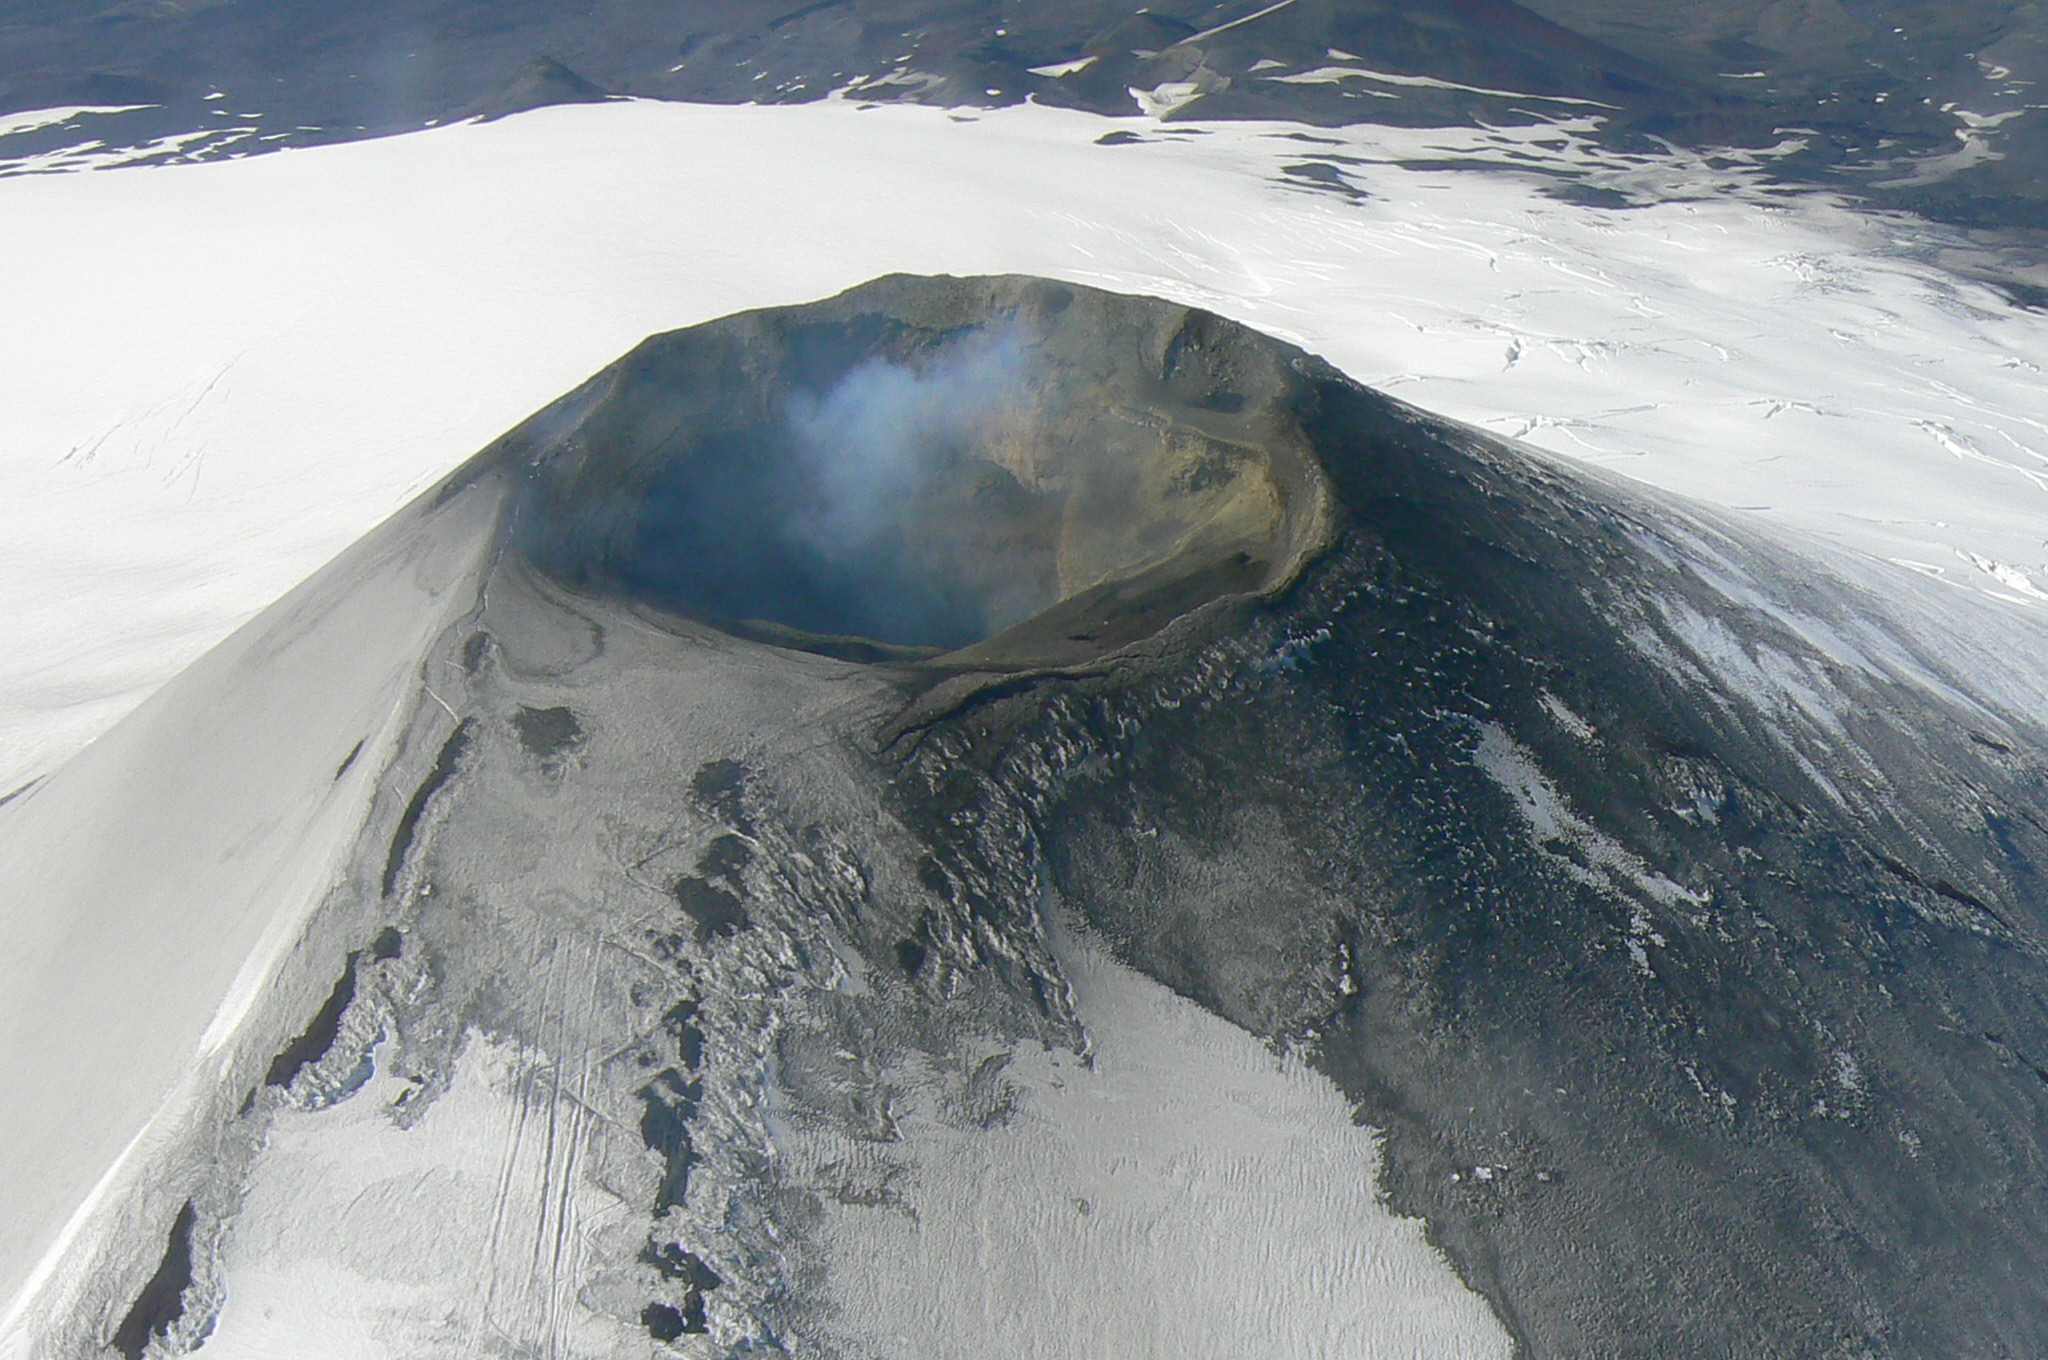 https://upload.wikimedia.org/wikipedia/commons/3/3d/Villarica_Volcano_%28aerial_view%291.jpg